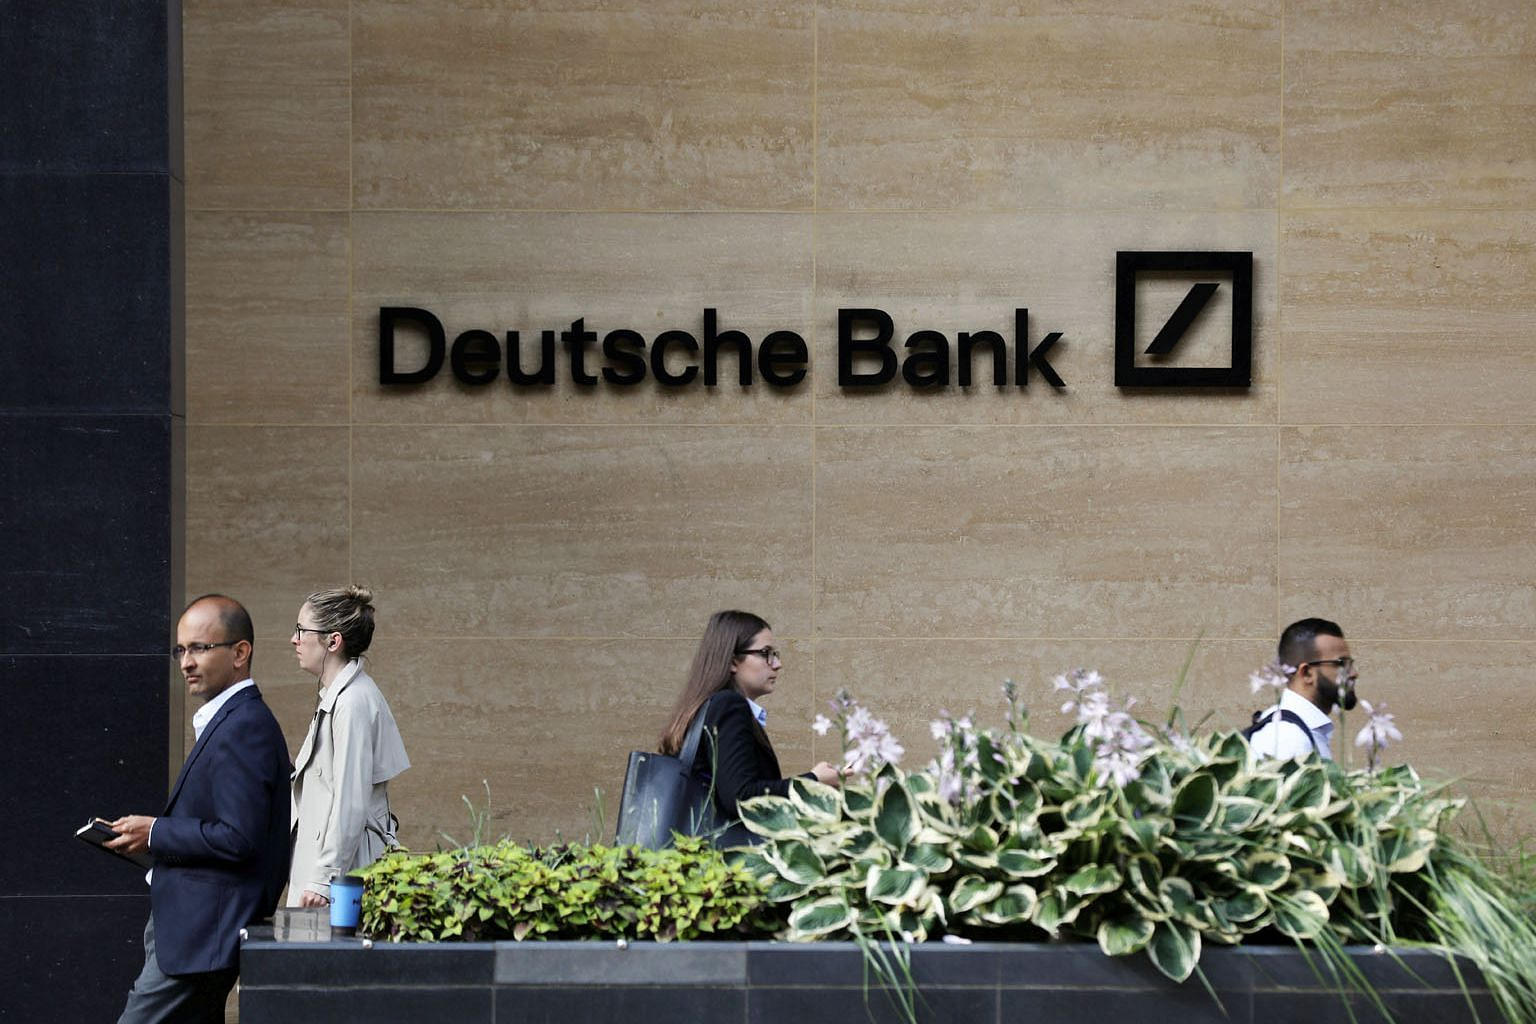 Deutsche Bank's website until Wednesday said it had more than 1,200 staff in Hong Kong, although that figure has since been removed. Expatriate bankers who lost their jobs and want to remain in Hong Kong have to consider lower-paying options or demot